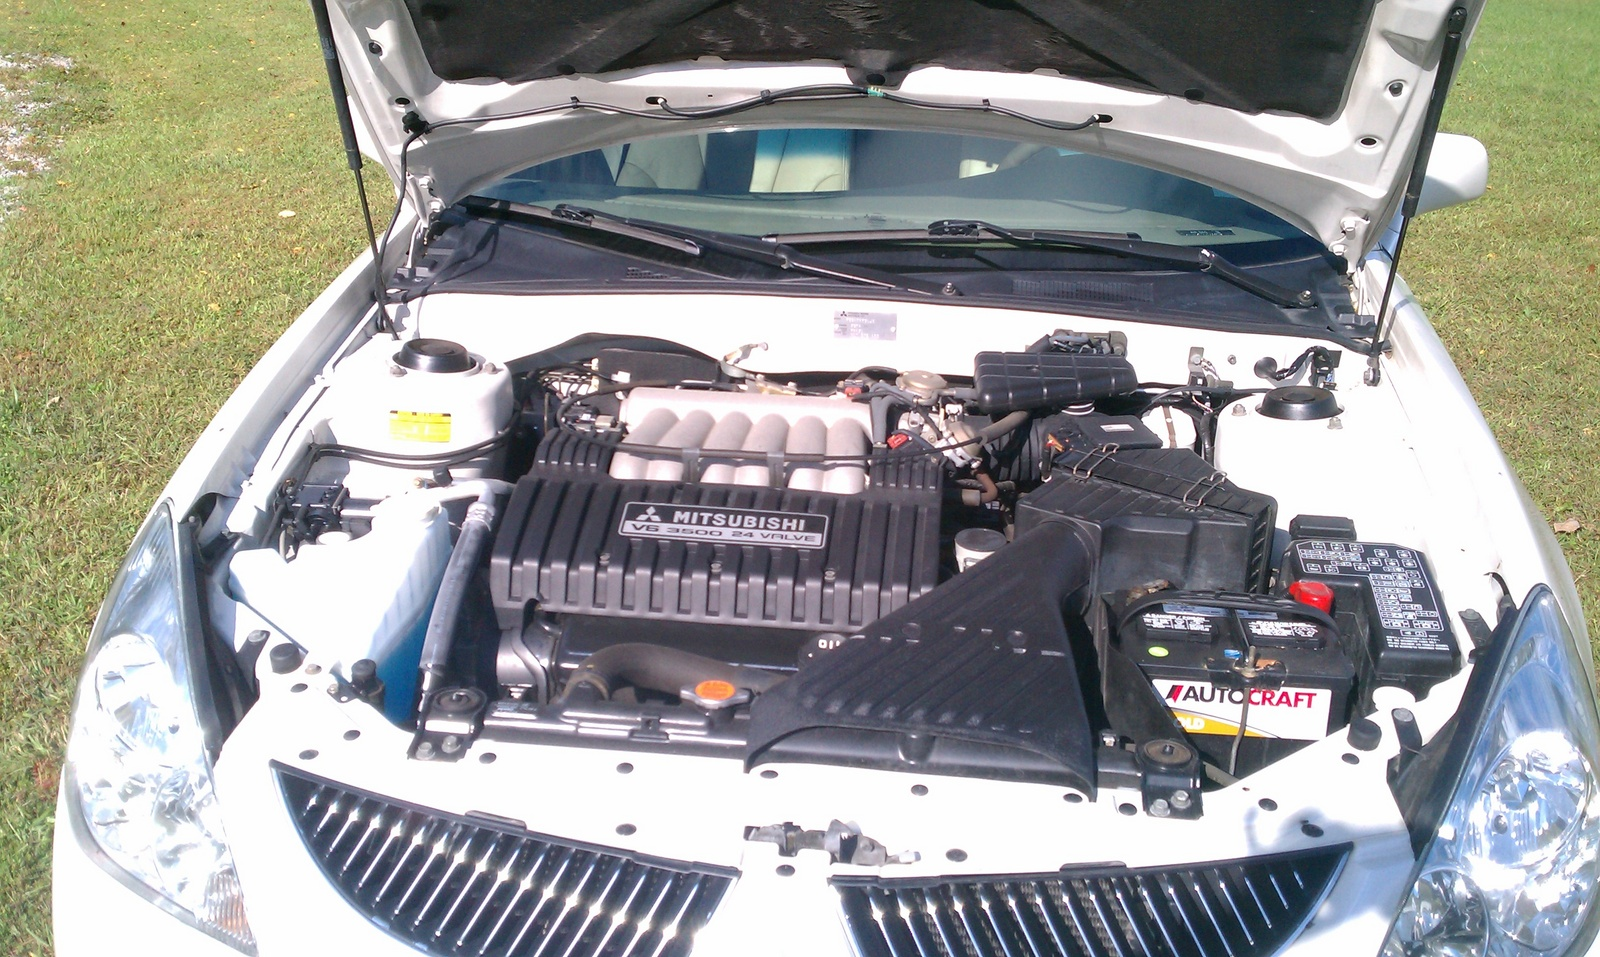 2004 Mitsubishi Diamante 4 Dr LS Sedan picture, engine